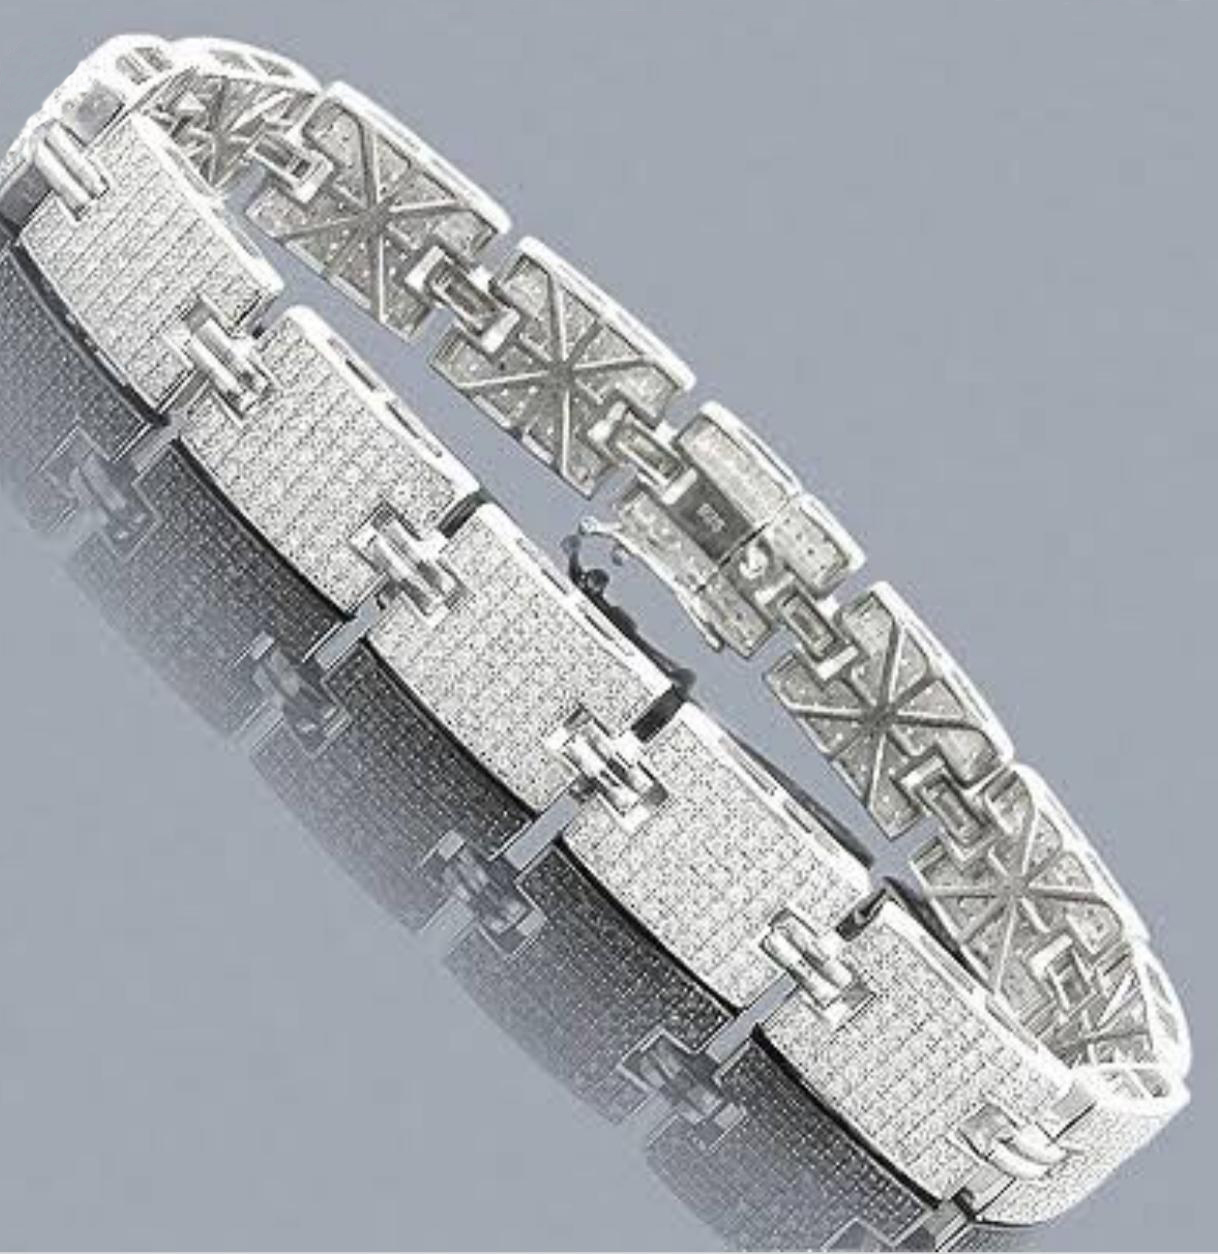 Lot 51 - 14 K / 585 White Gold Diamond Bracelet